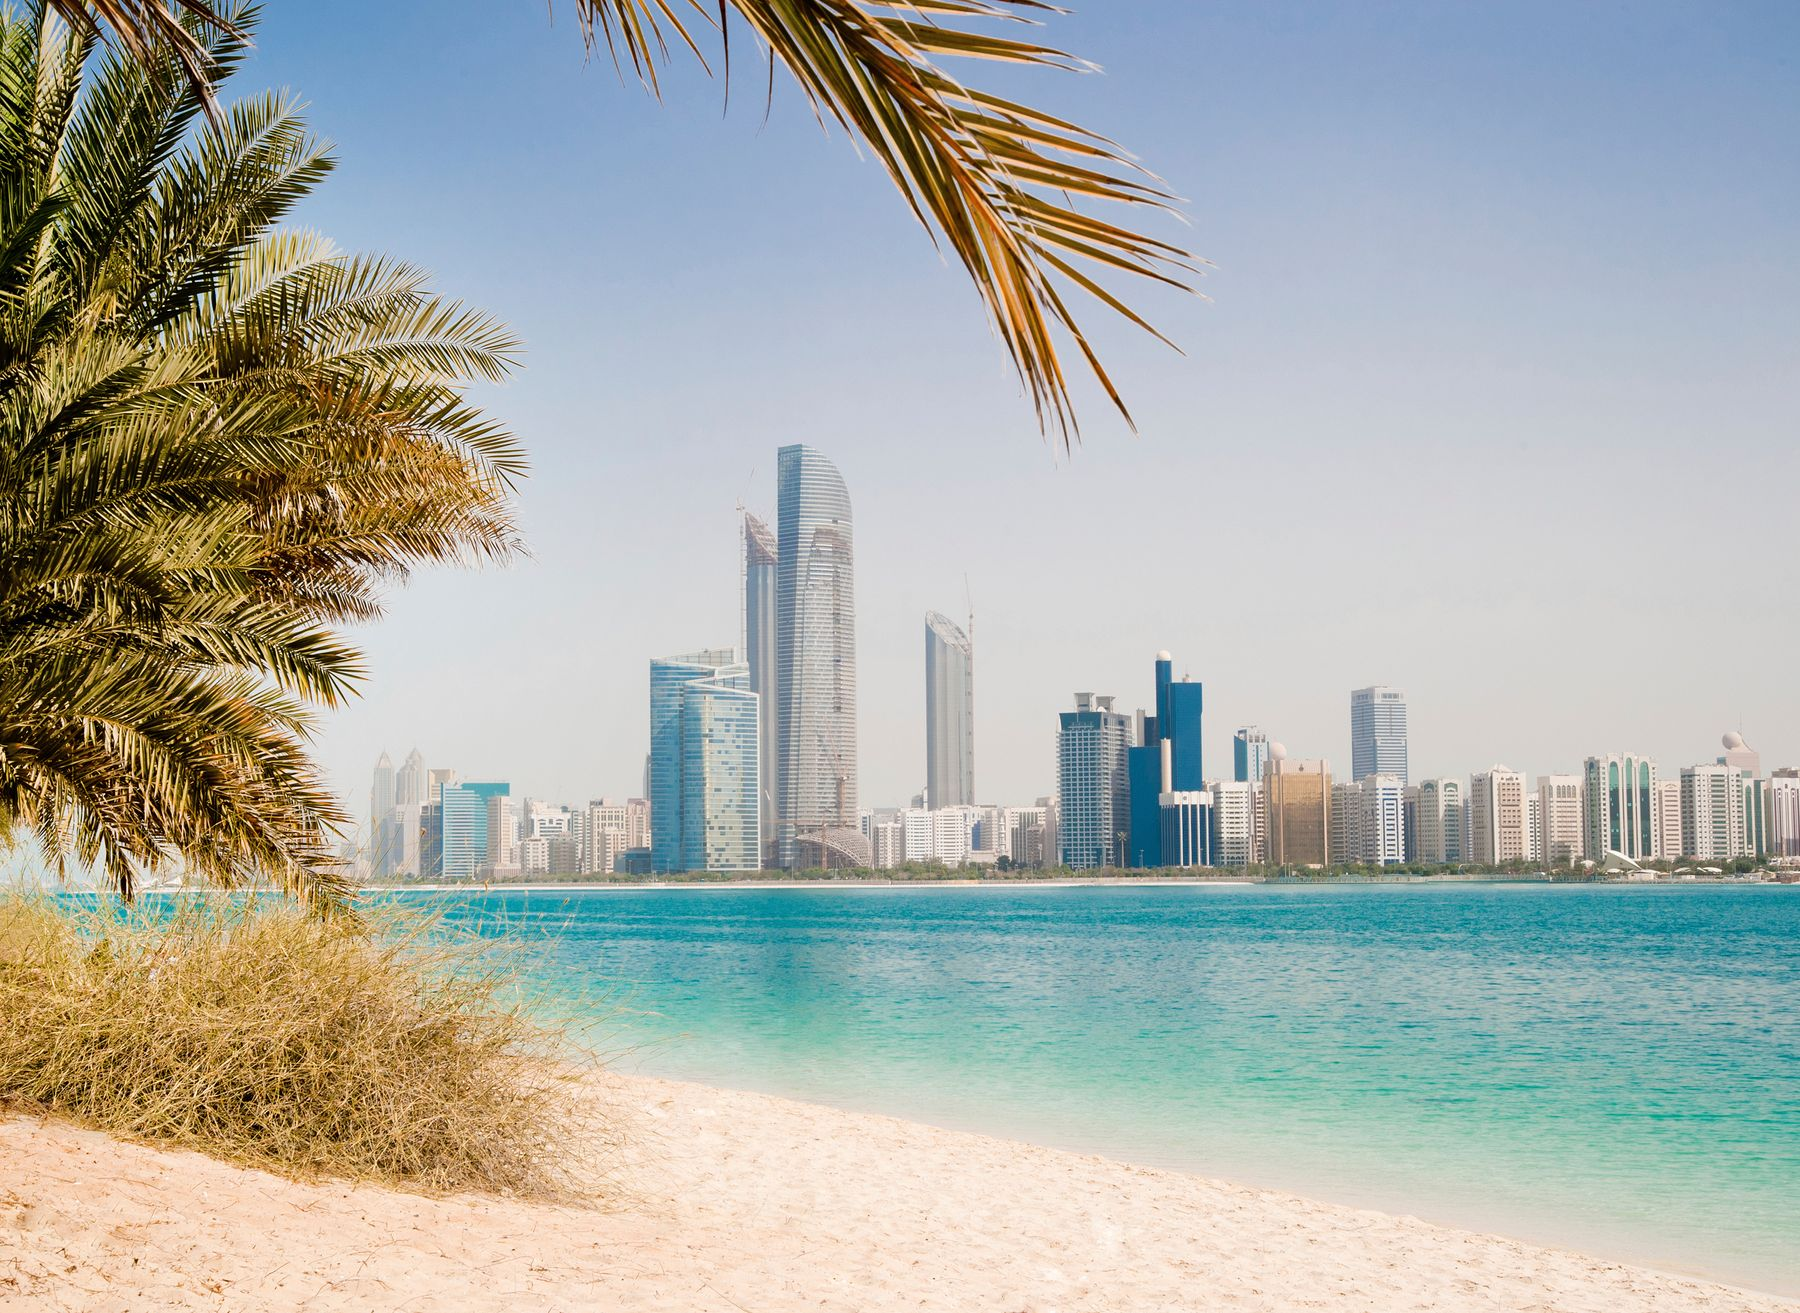 Dubai skyline as seen from a beach with palm trees in the foreground